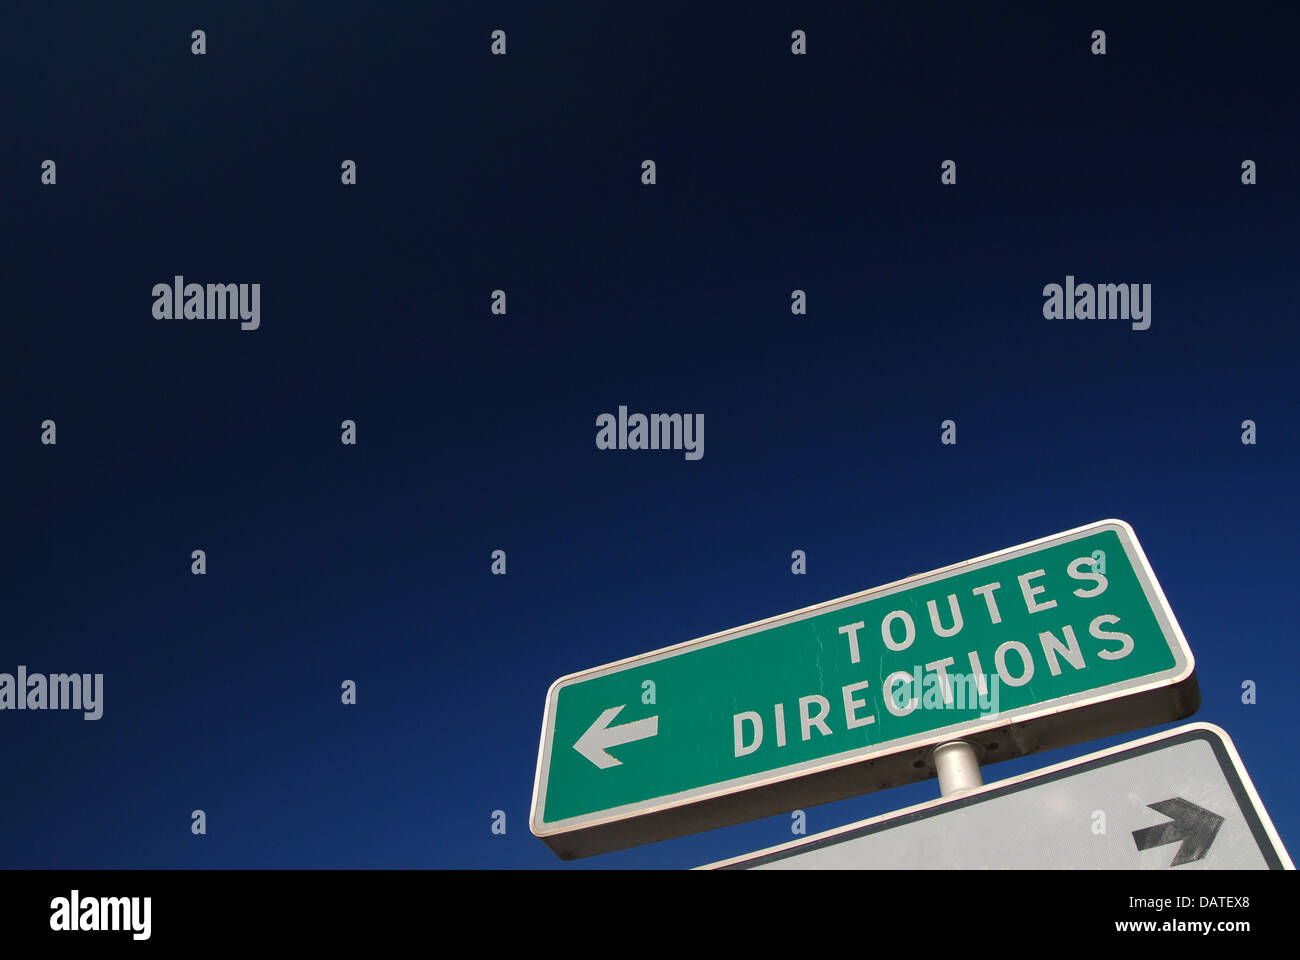 ALL DIRECTIONS / Toutes Directions. Road sign in France, against a deep blue sky. - Stock Image